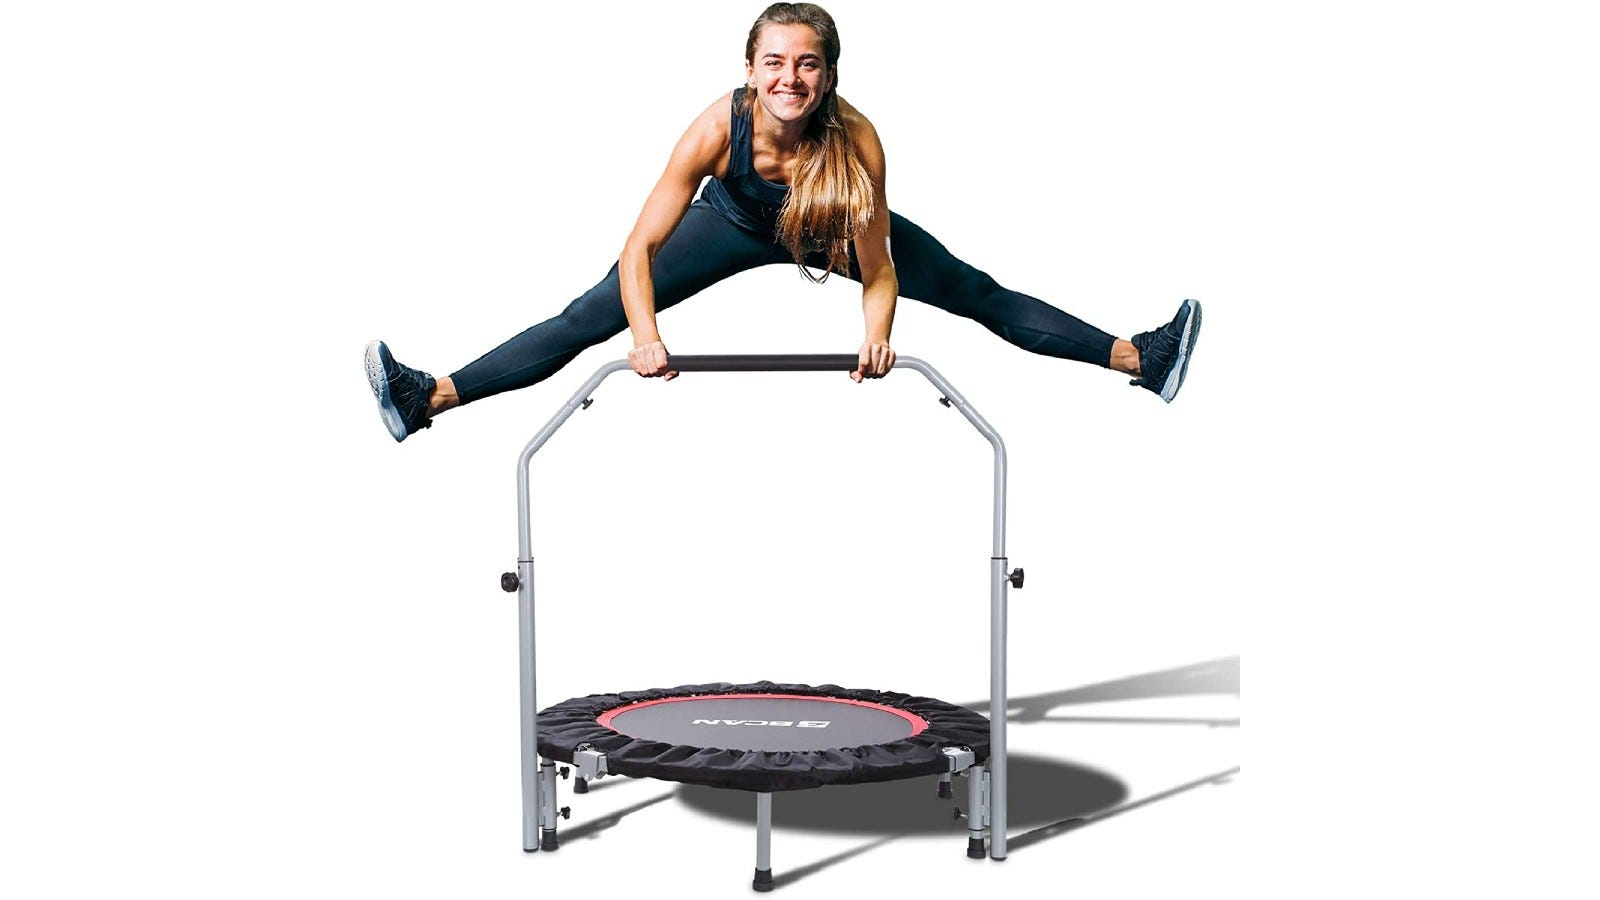 a young woman jumping on a mini trampoline holding a foam handlebar